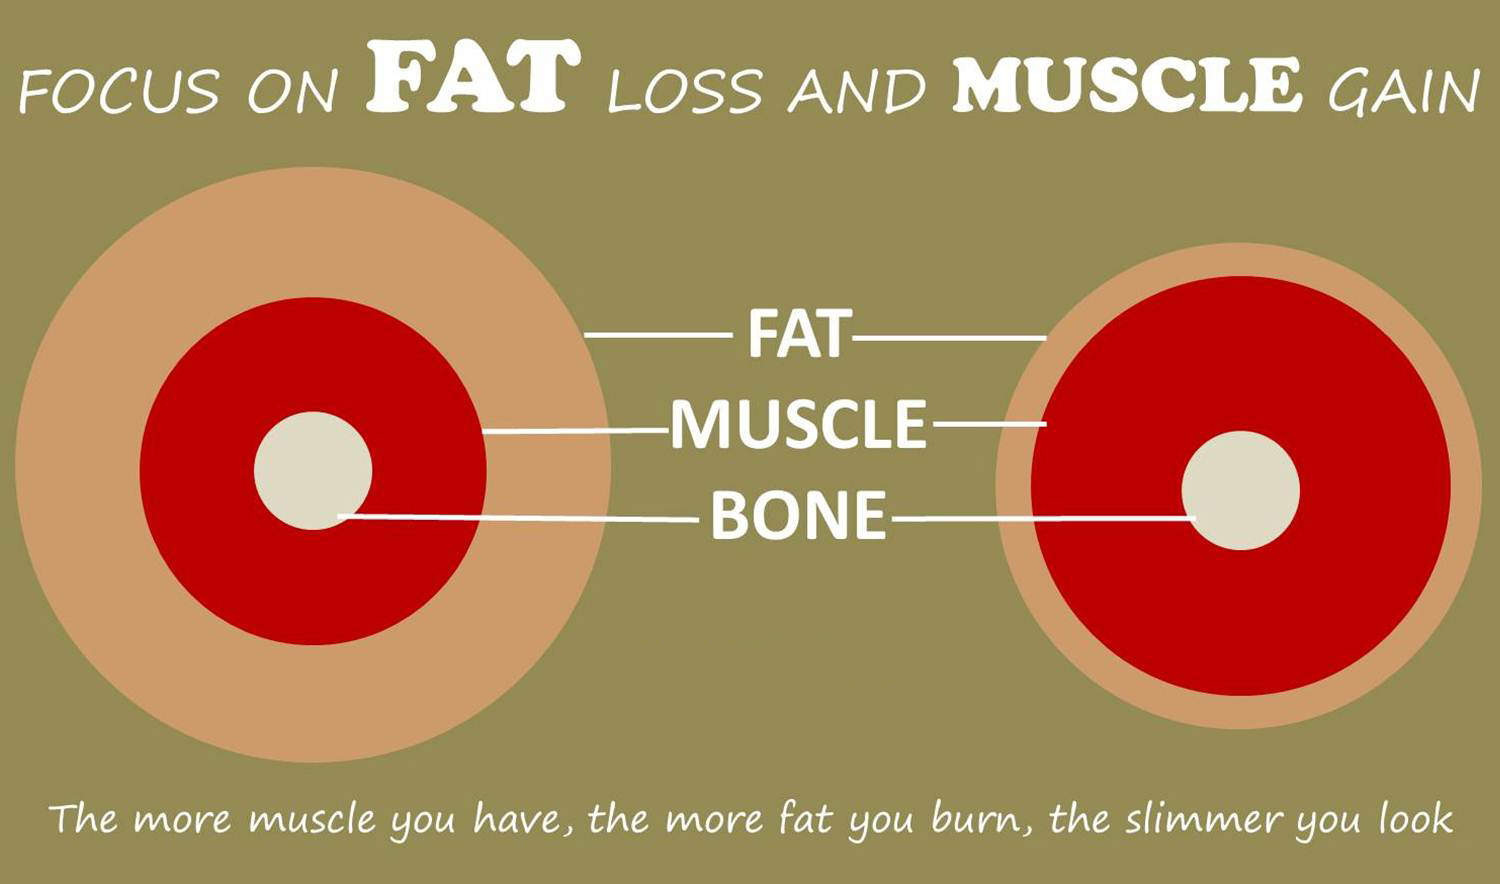 Focus-on-fat-loss-and-muscle-gain.png